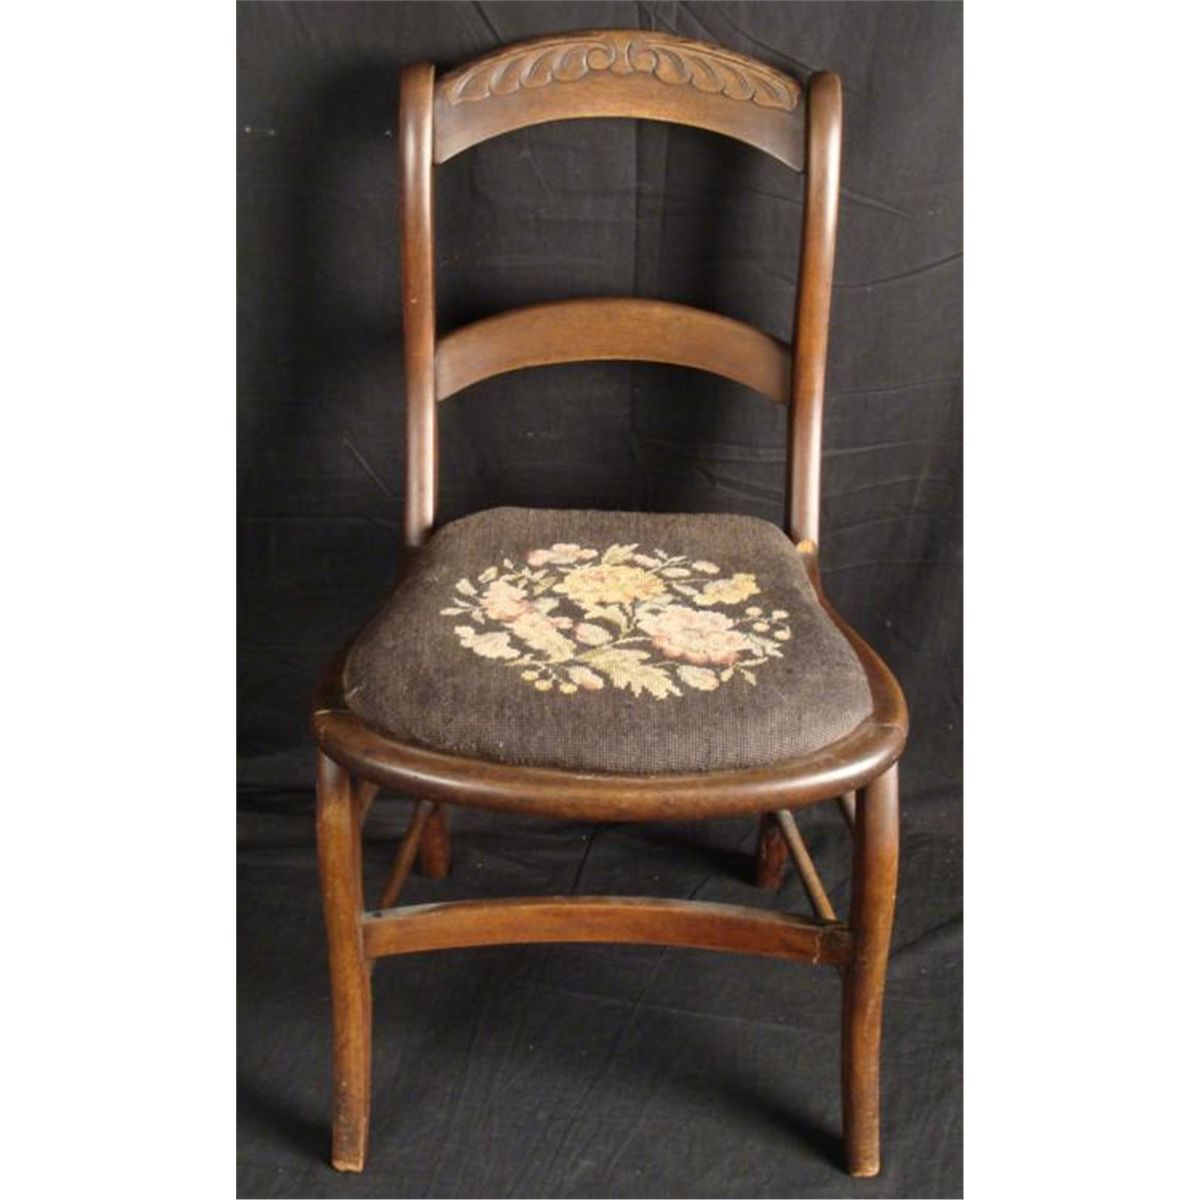 - Antique Walnut Victorian Chair -Needlepoint Seat 1860